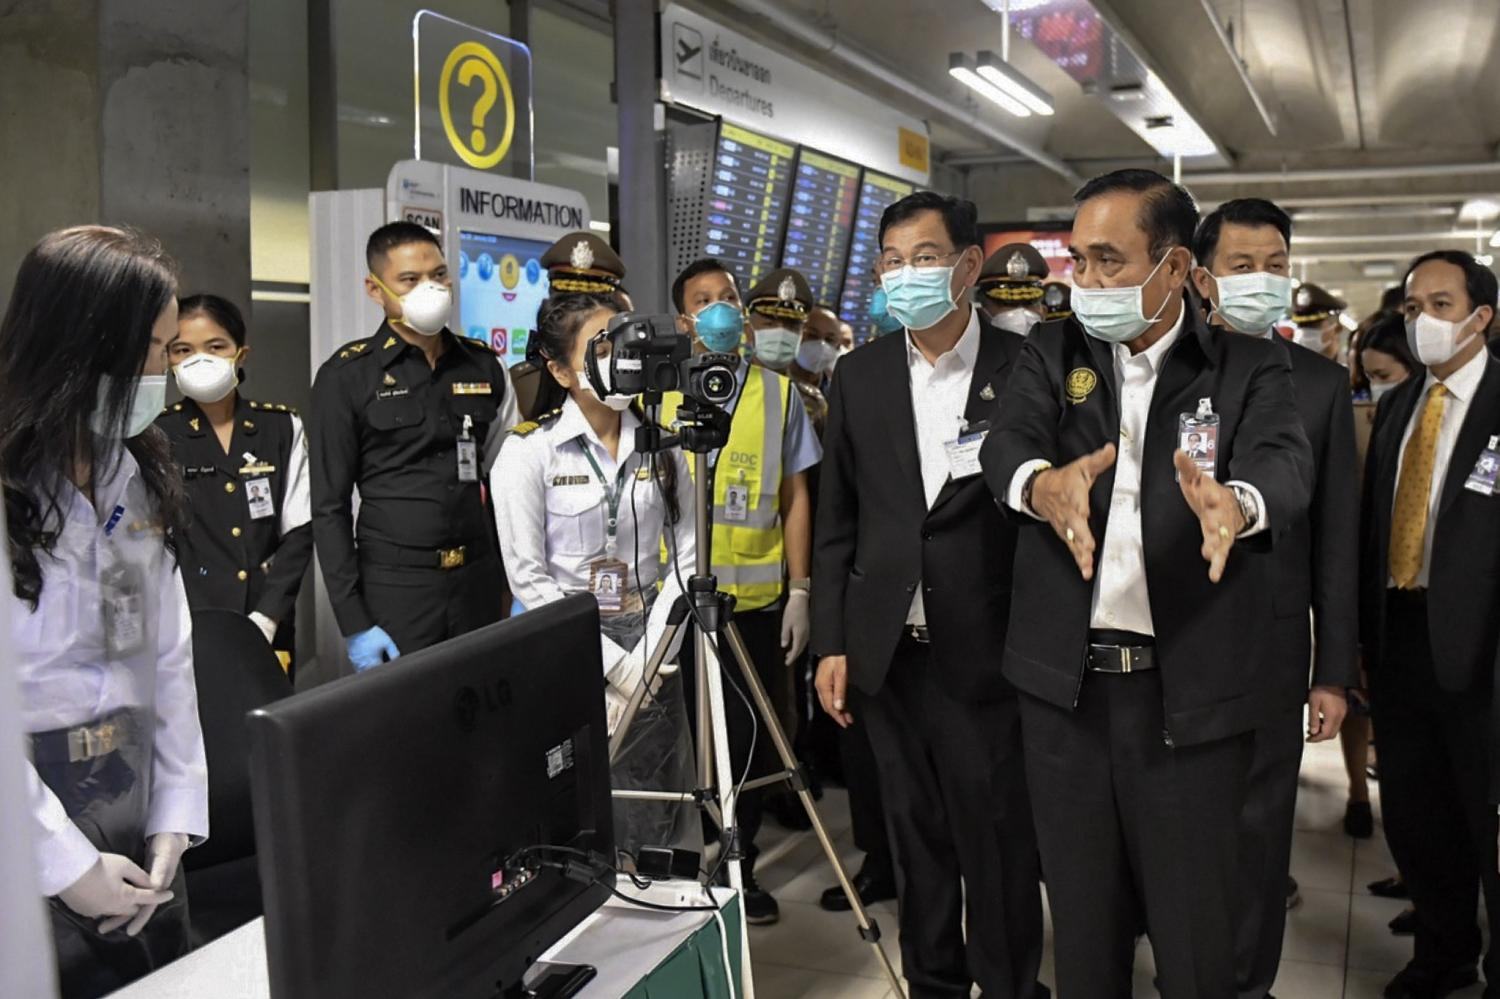 Prime Minister Prayut Chan-o-cha visited Suvarnabhumi airport to address the novel coronavirus outbreak, one of the key issues faced by the government.